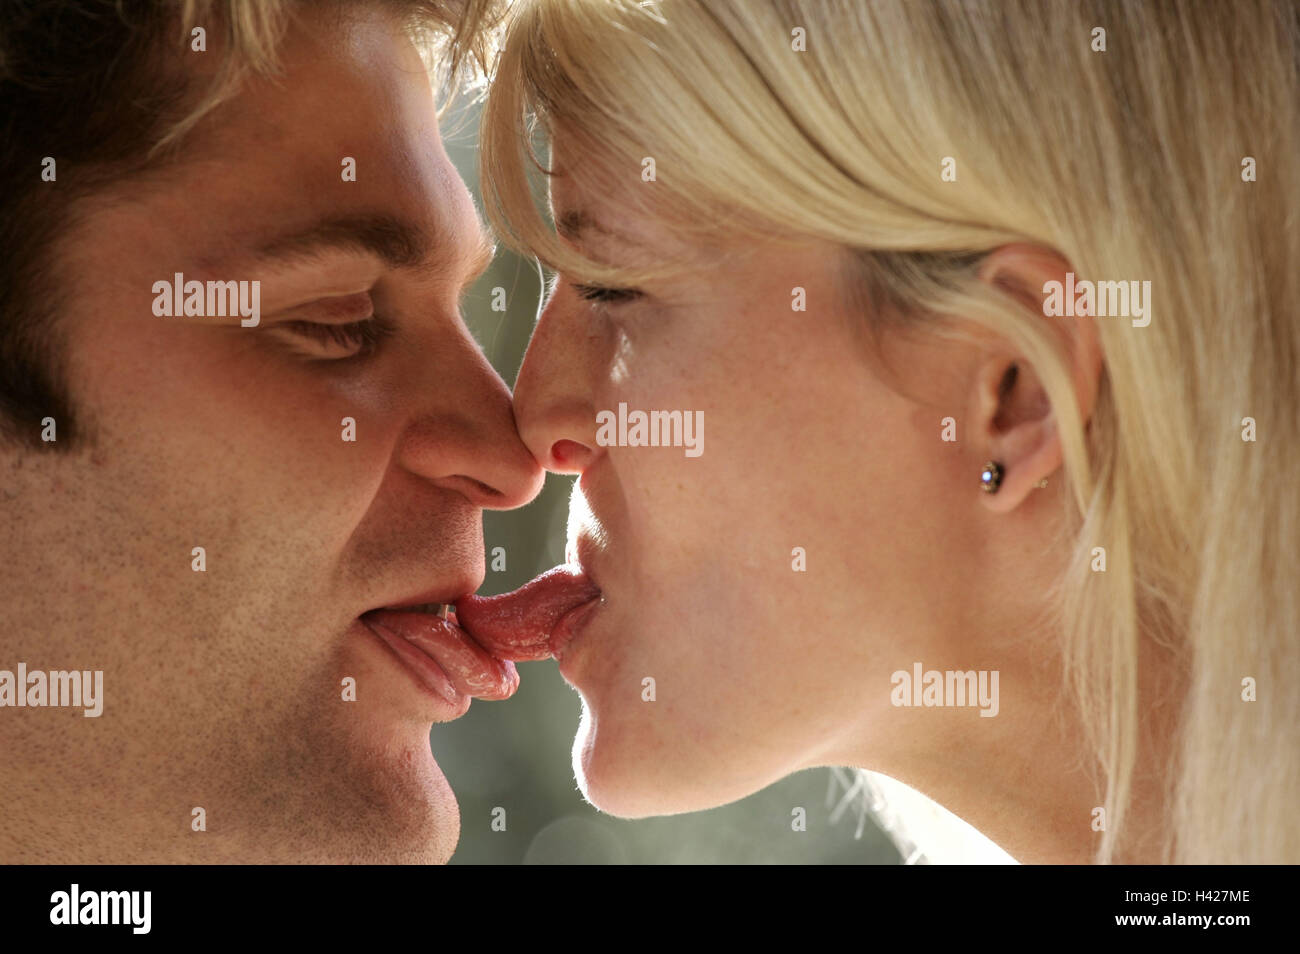 how to kiss with tongue